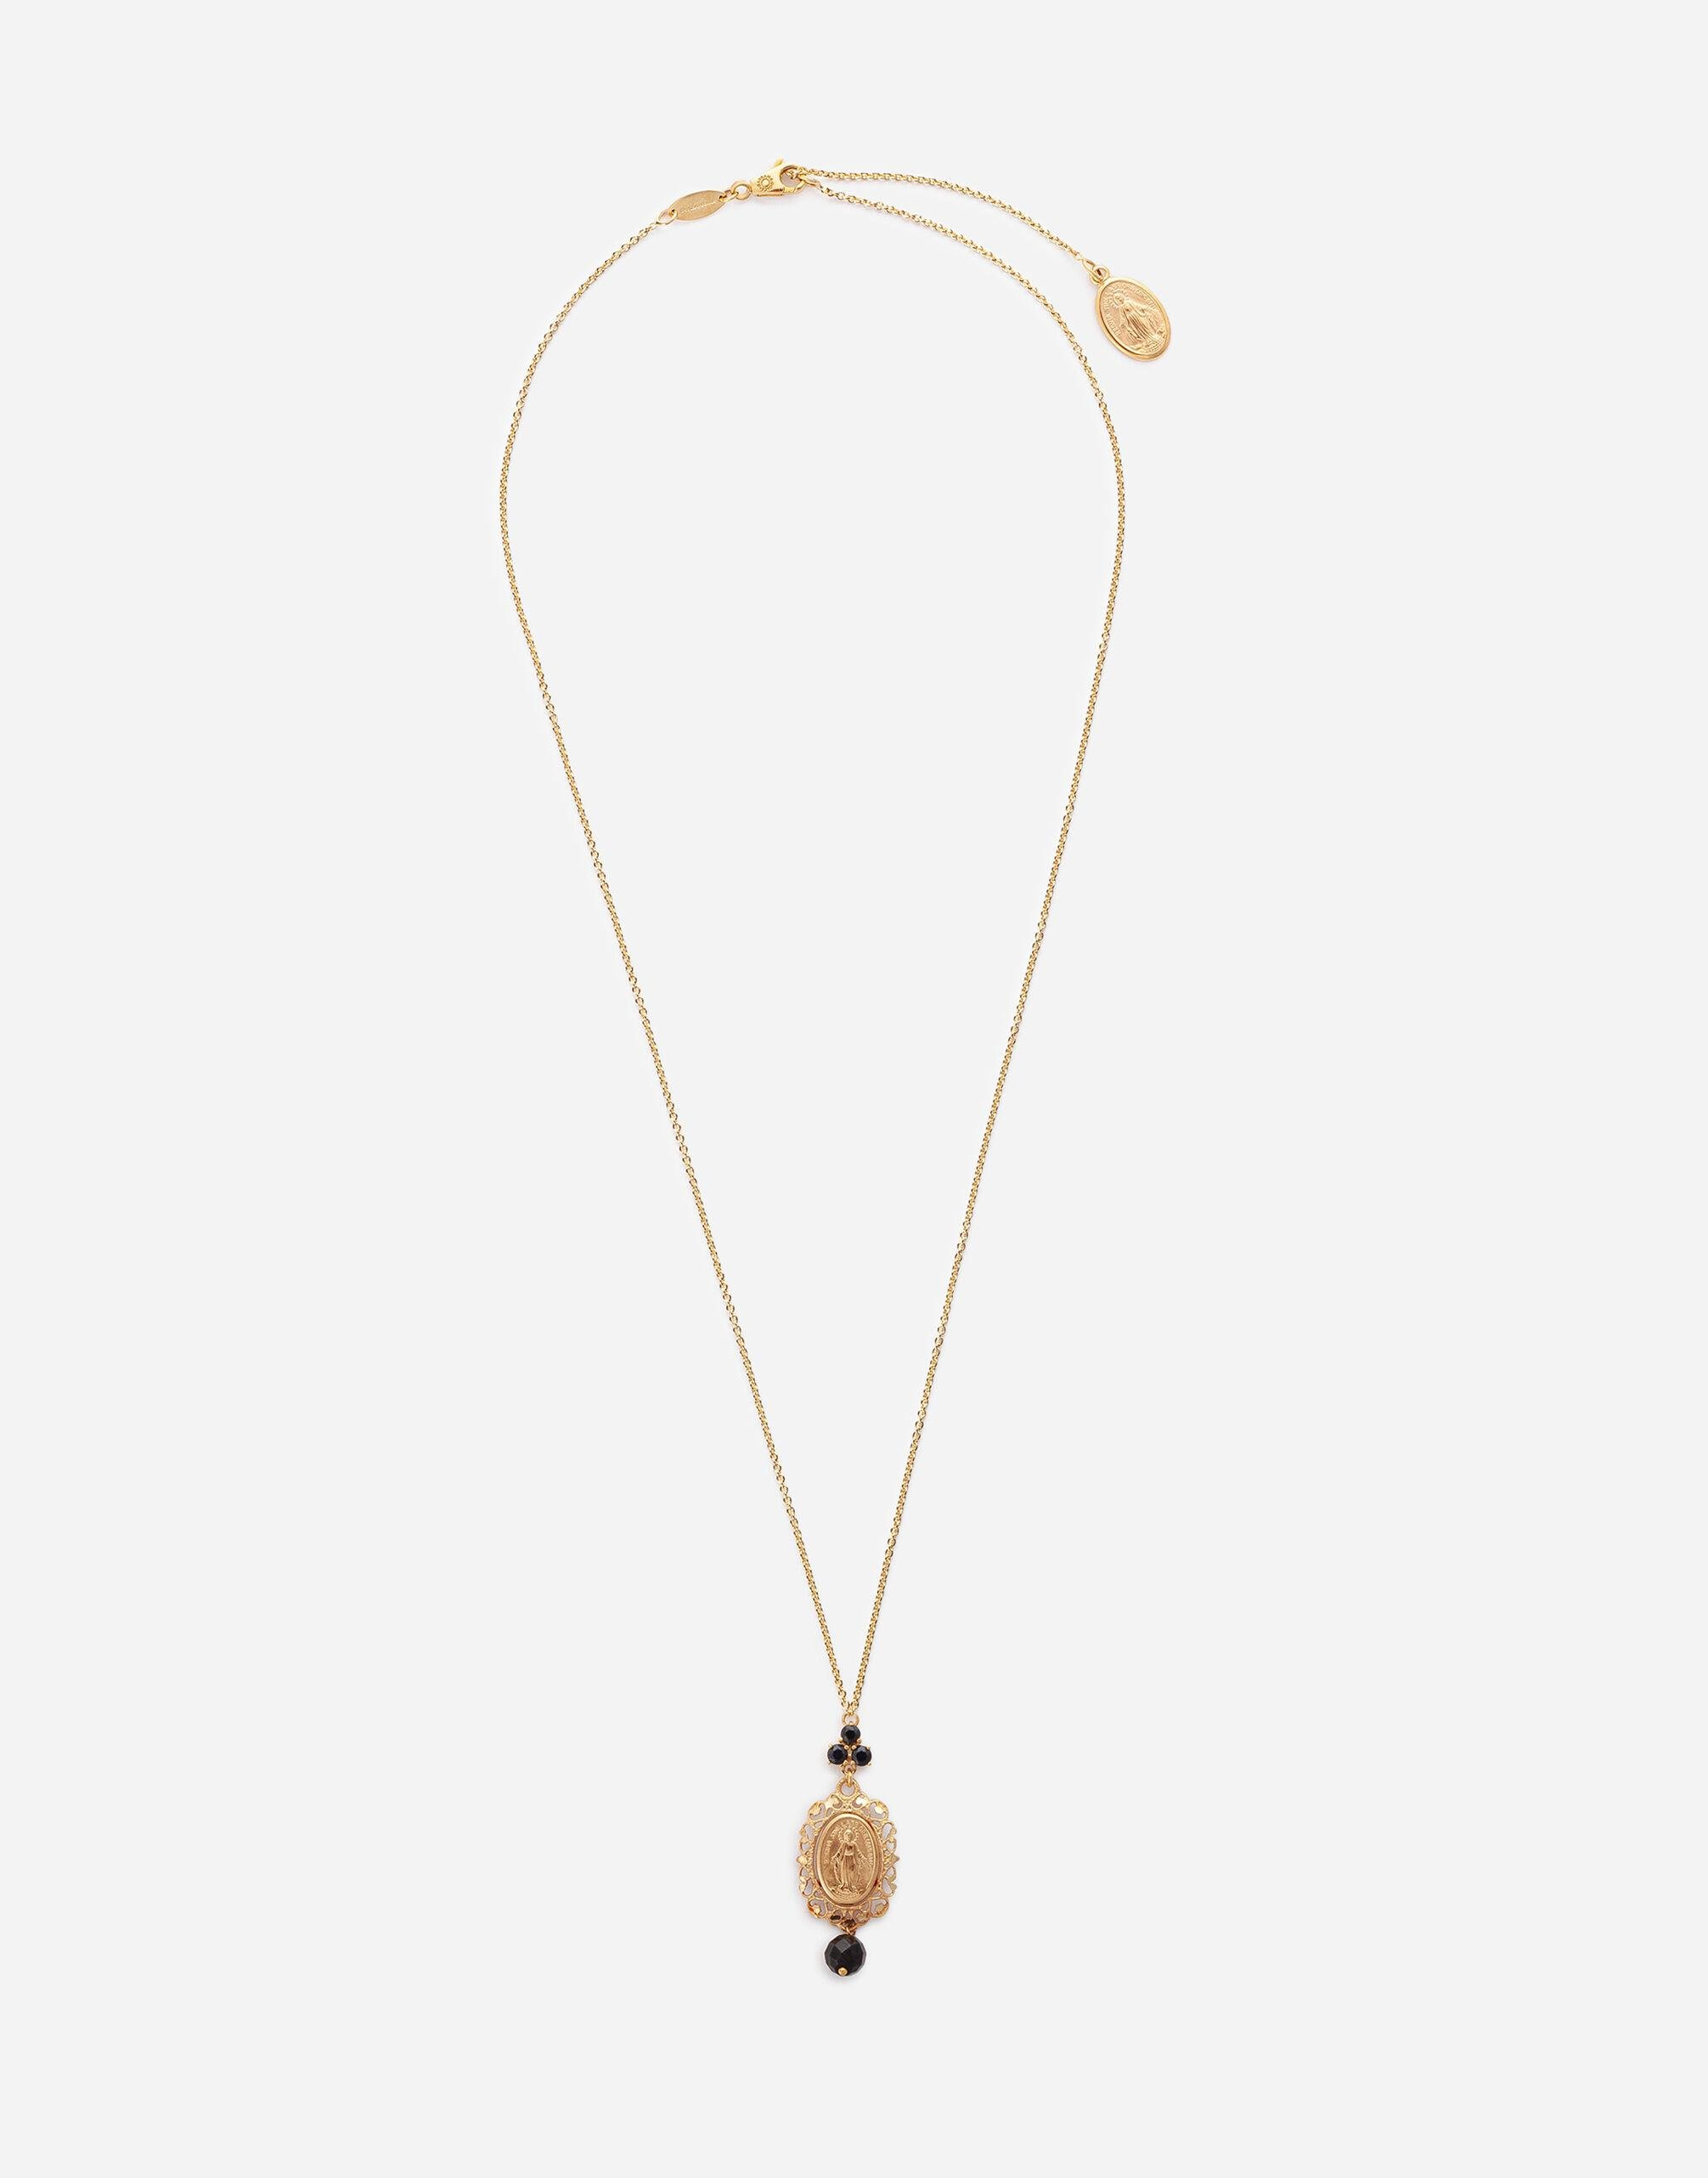 Sicily pendant with medal on yellow gold chain